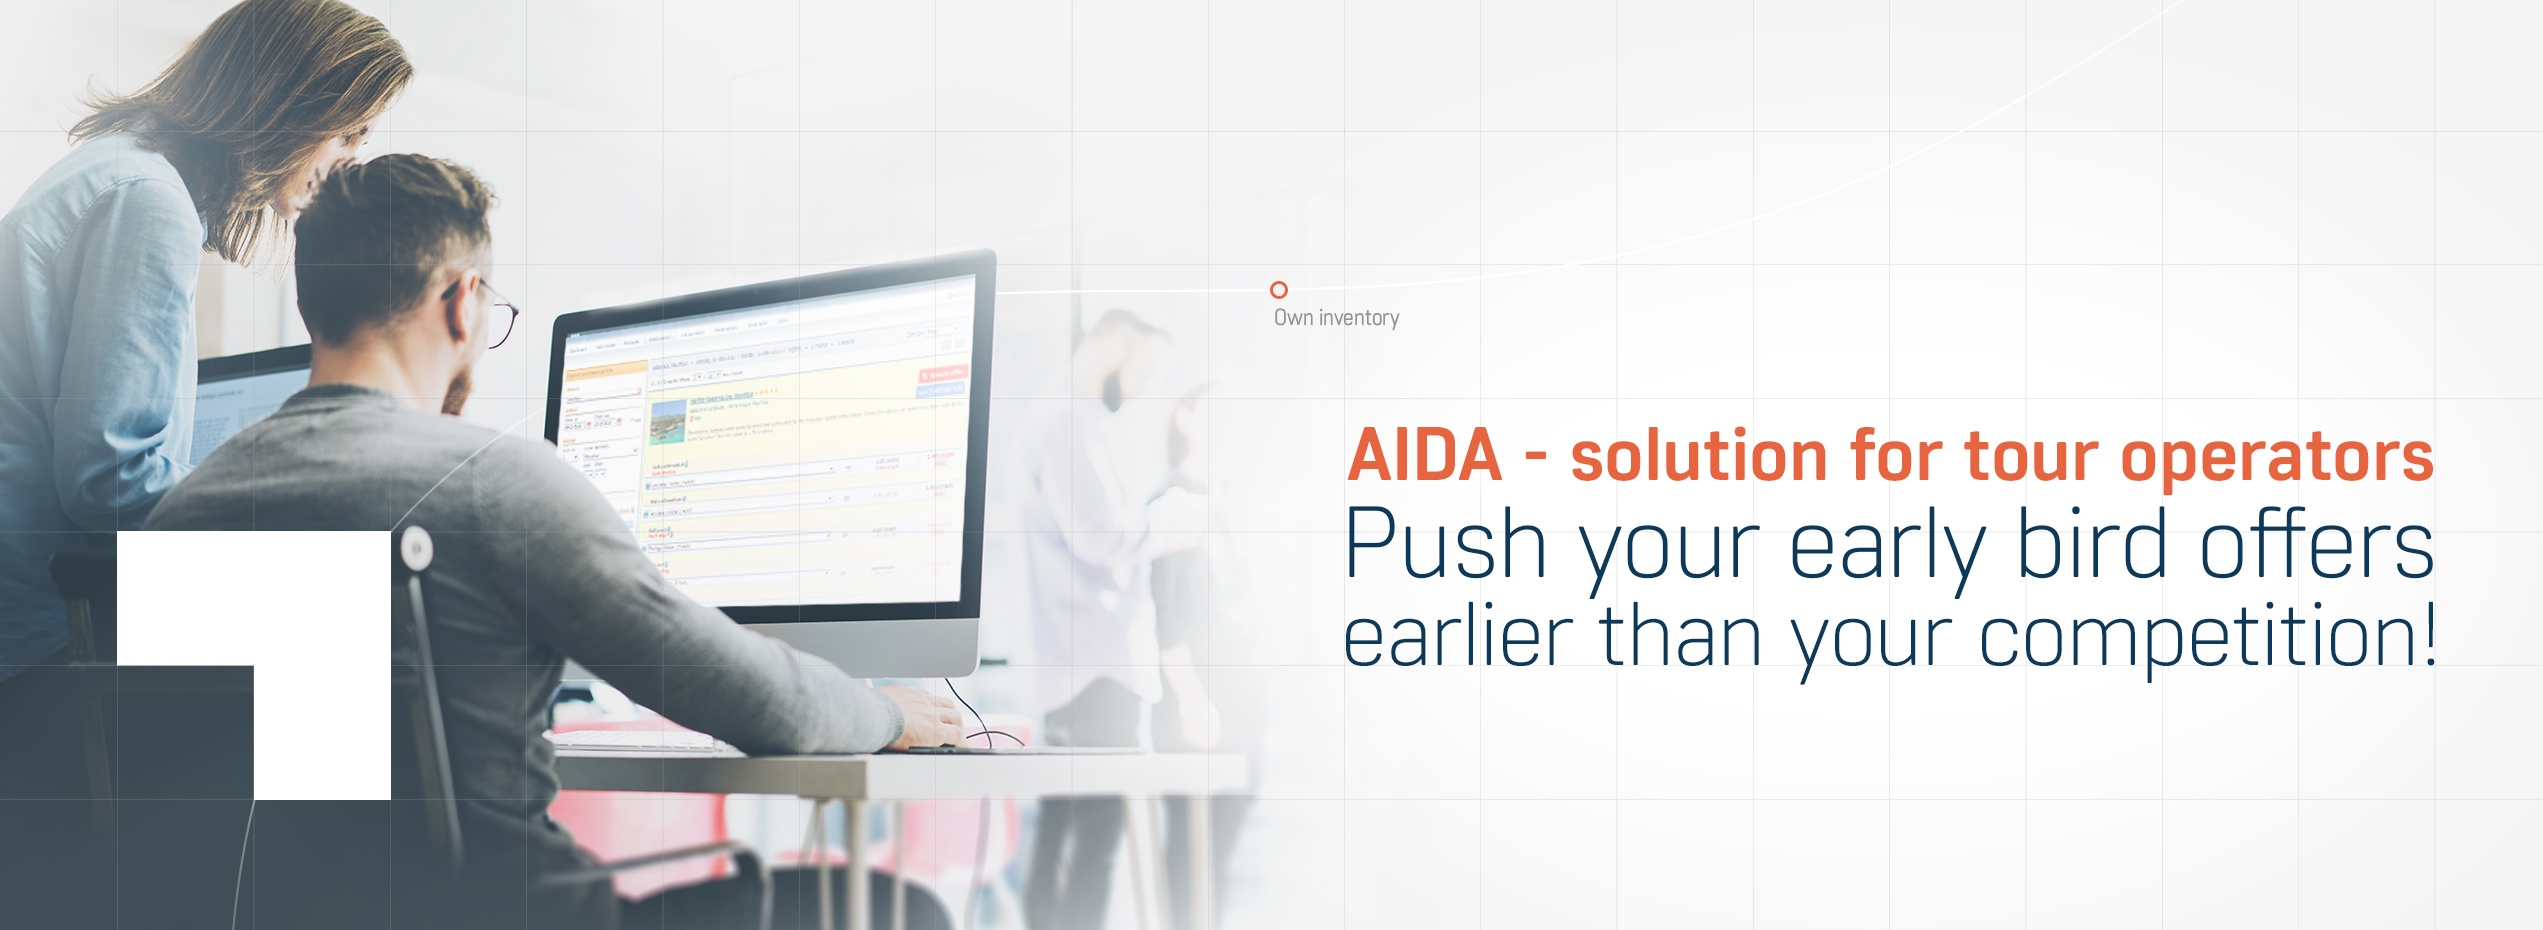 AIDA Solution for Tour operators